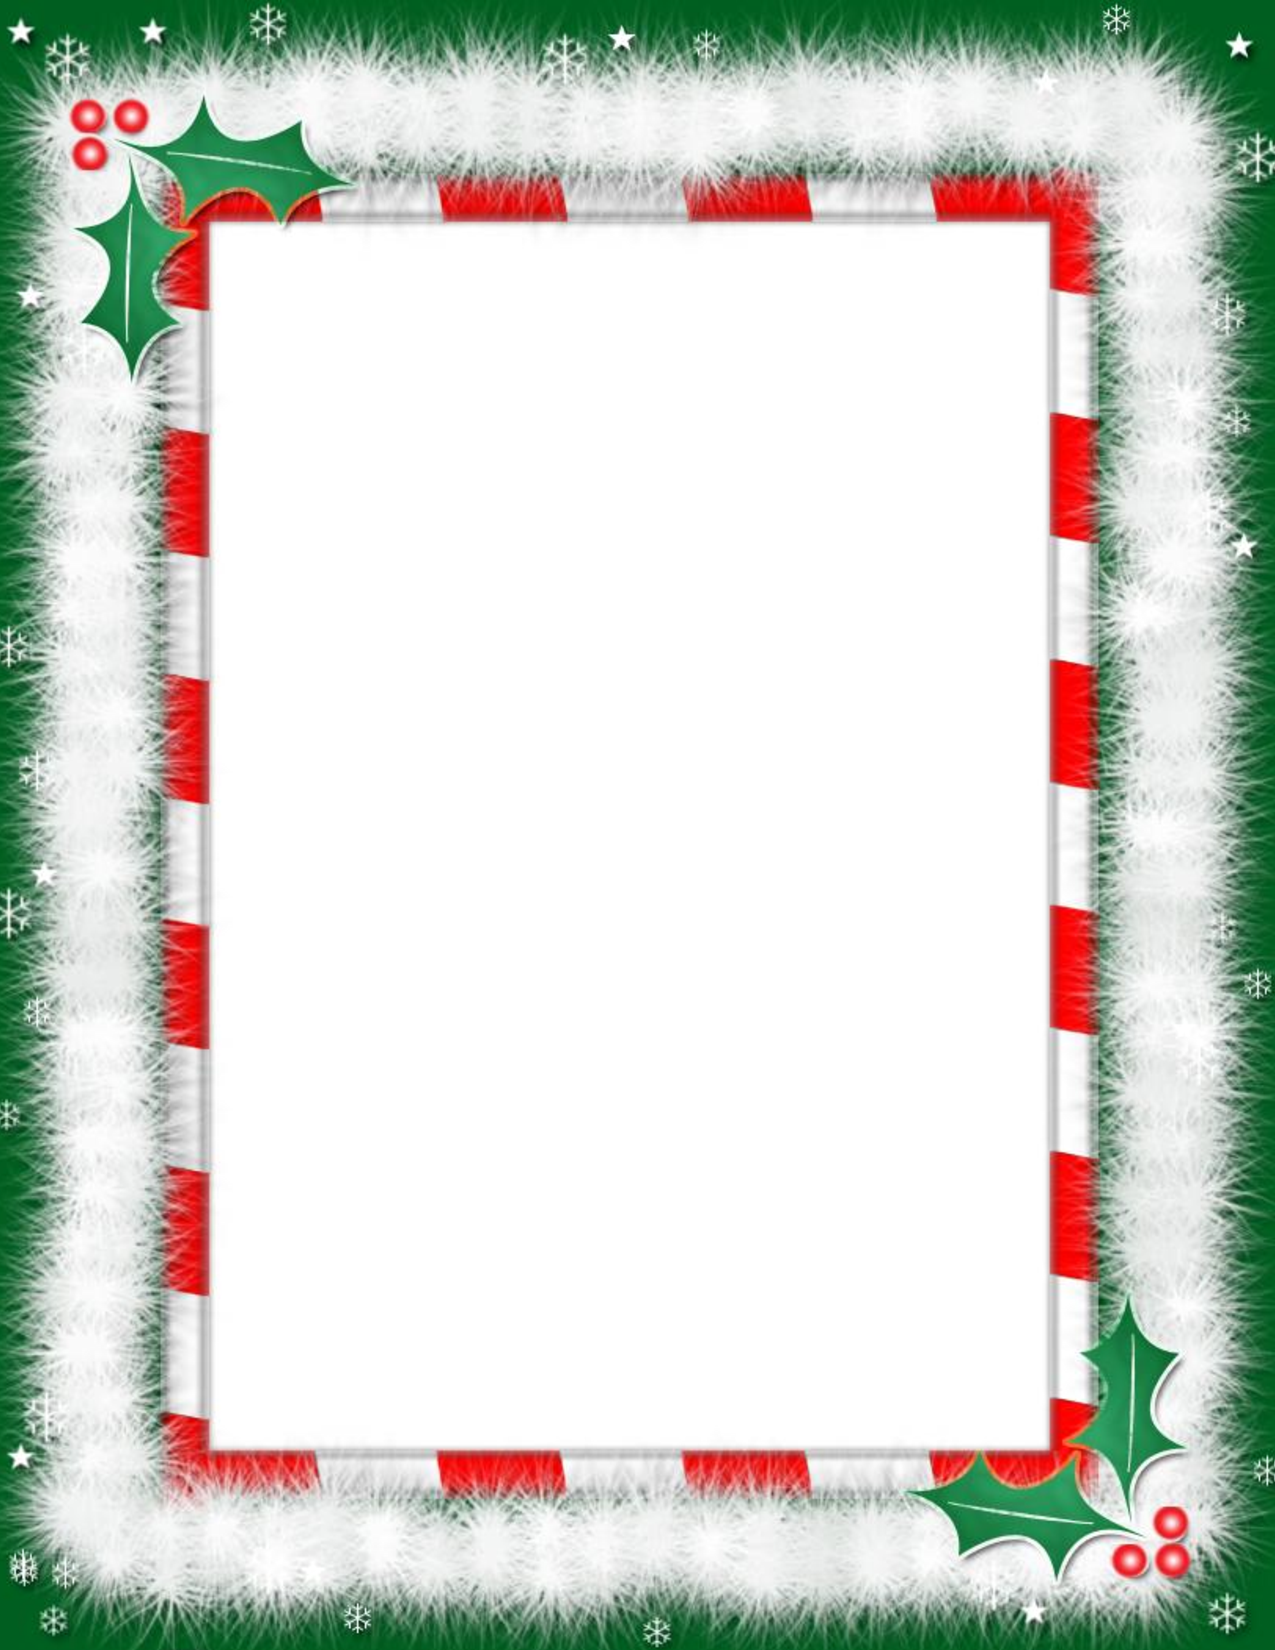 Holiday letter border clipart electronics svg library Images of Holiday Page Borders For Free - Best easter gift ever svg library